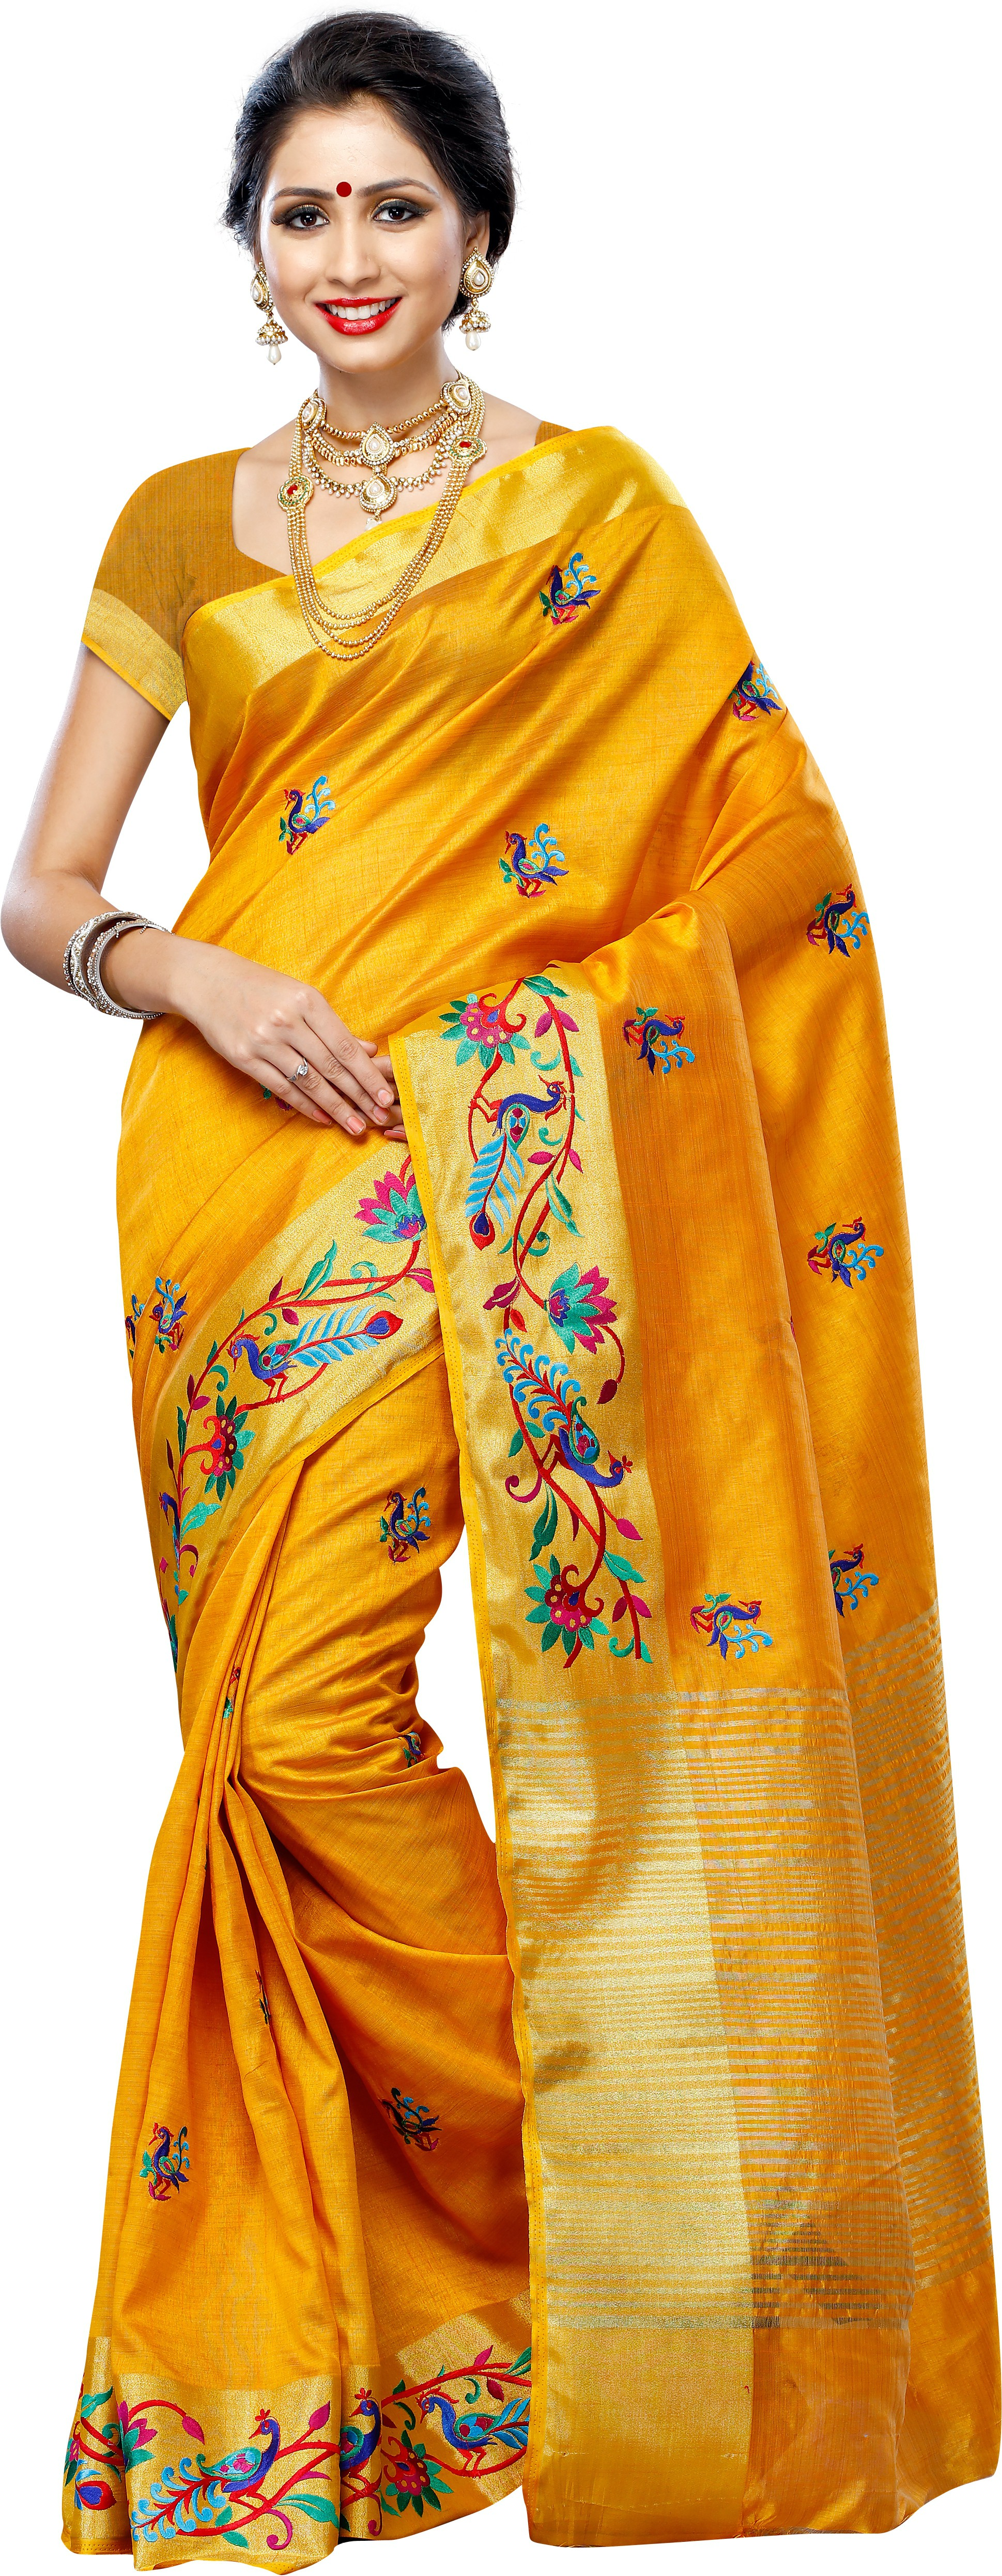 Deals - Kolkata - Gold Rush <br> Suits, Sarees...<br> Category - clothing<br> Business - Flipkart.com